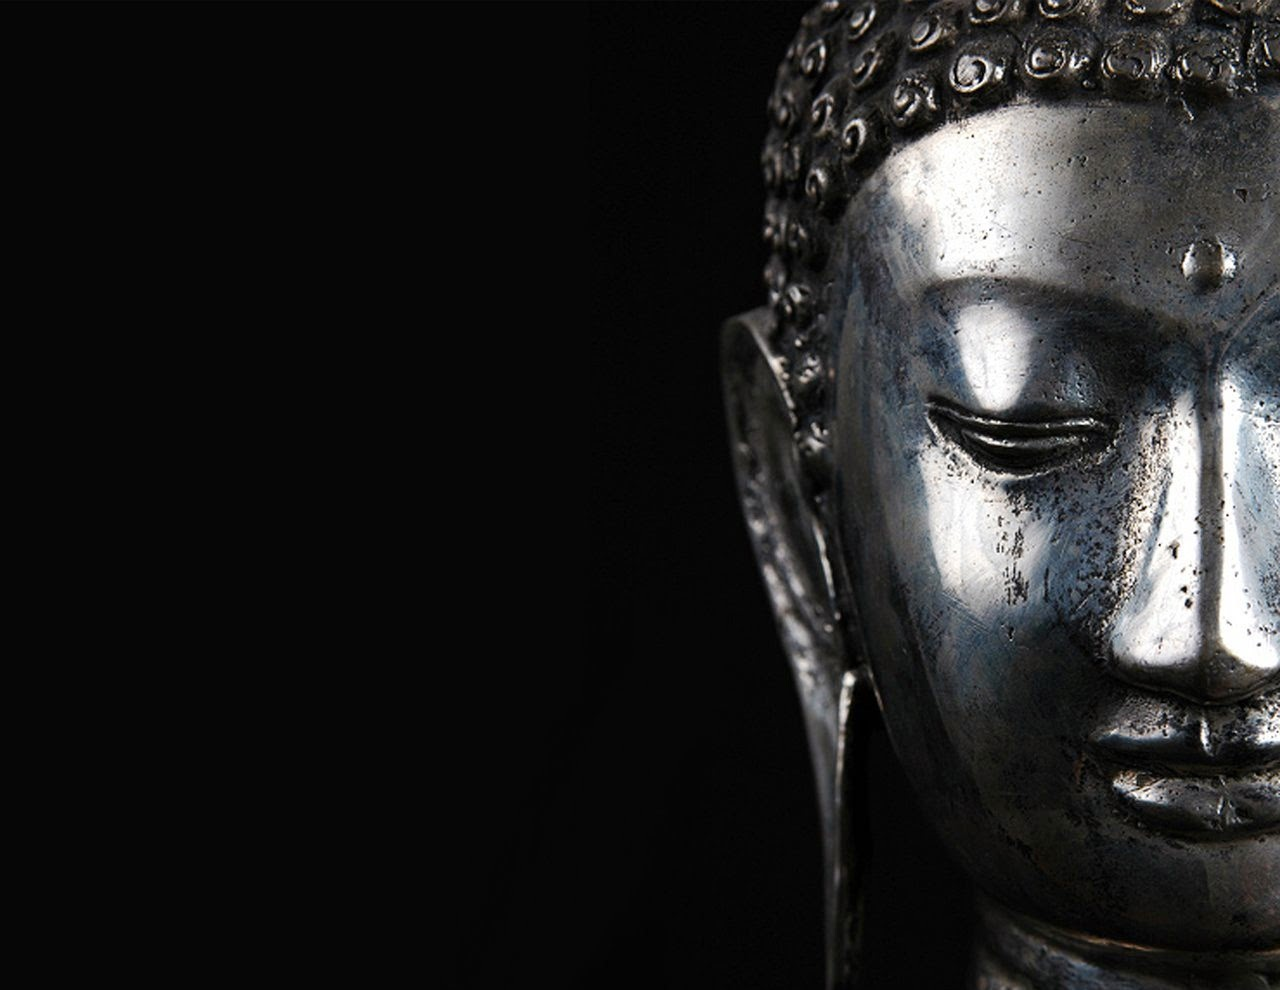 Buddha Wallpaper Hd For Mobile Hd Wallpaper For Desktop